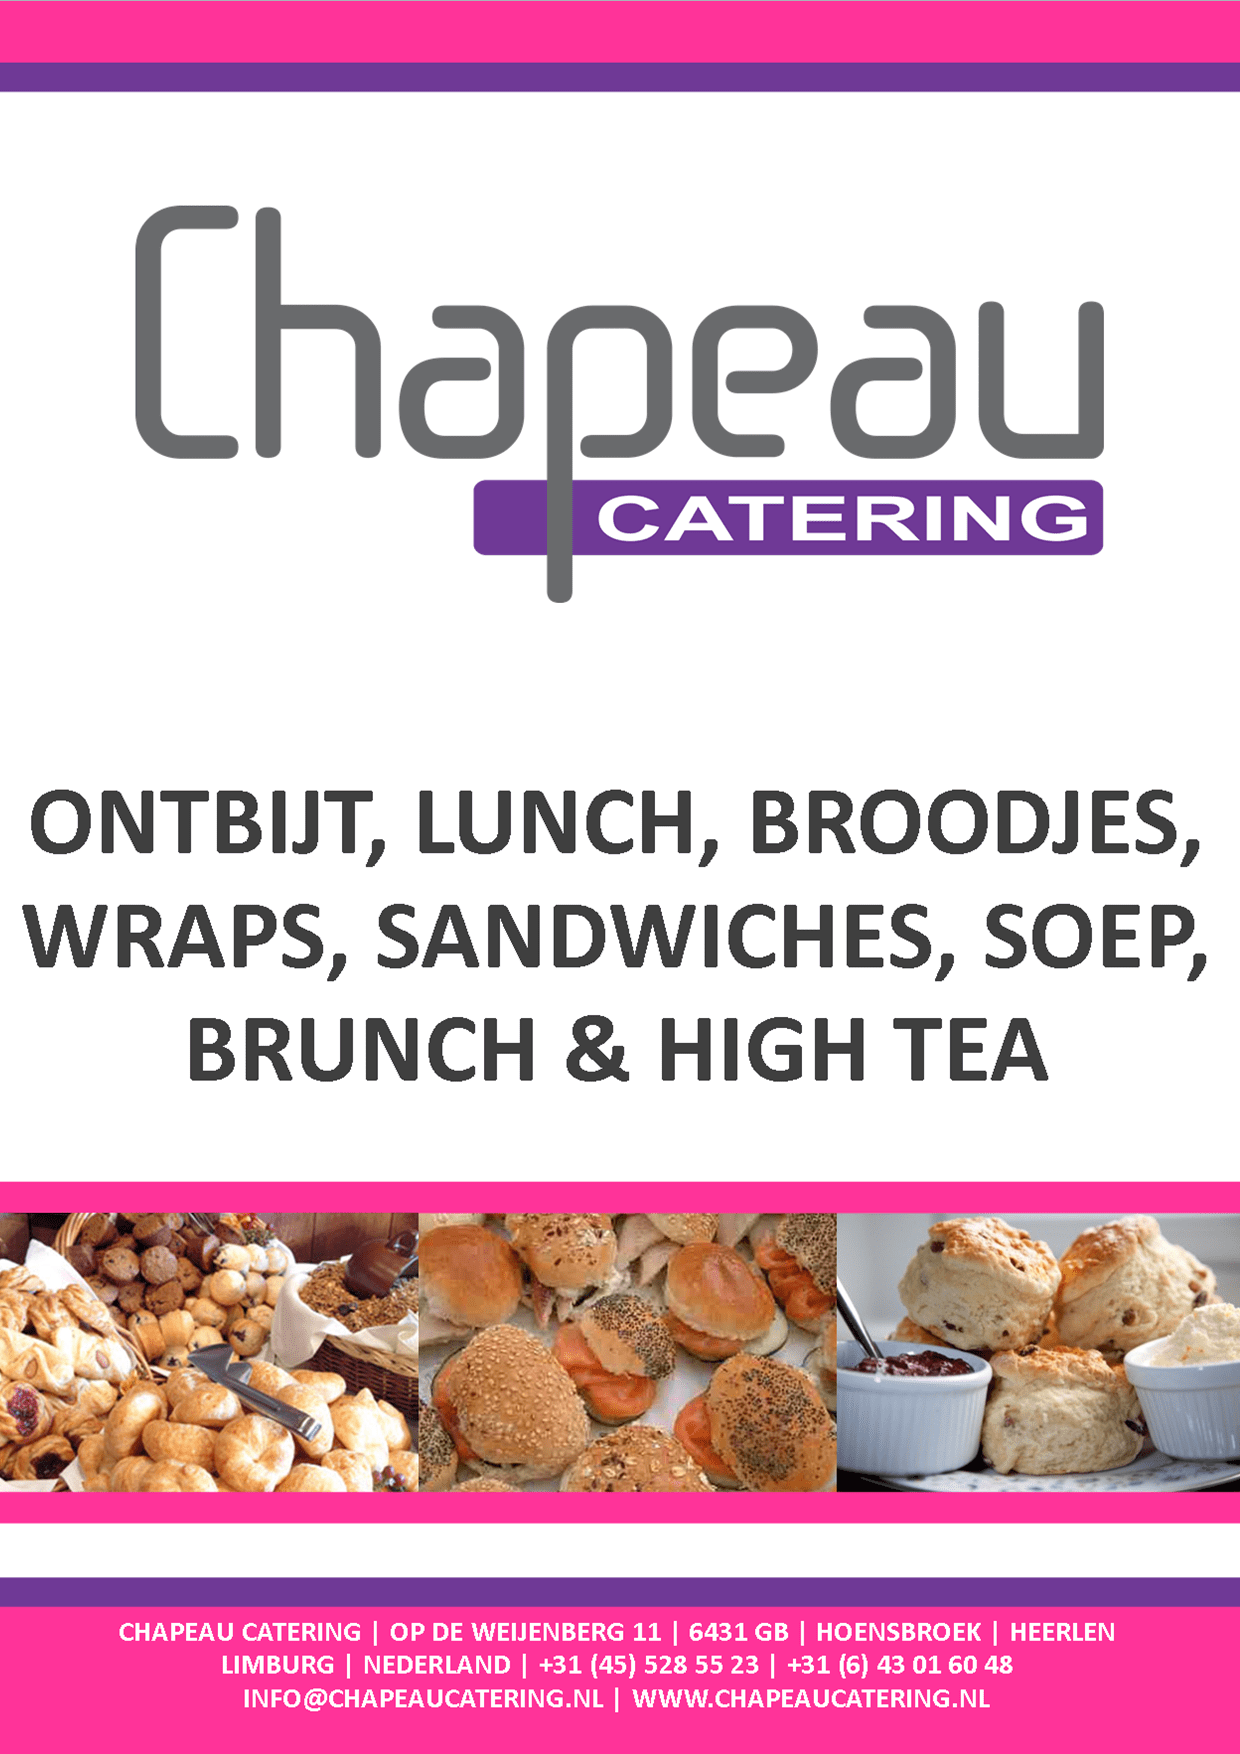 ONTBIJT, LUNCH, BROODJES, WRAPS, SANDWICHES, SOEP, BRUNCH & HIGH TEA CATERING